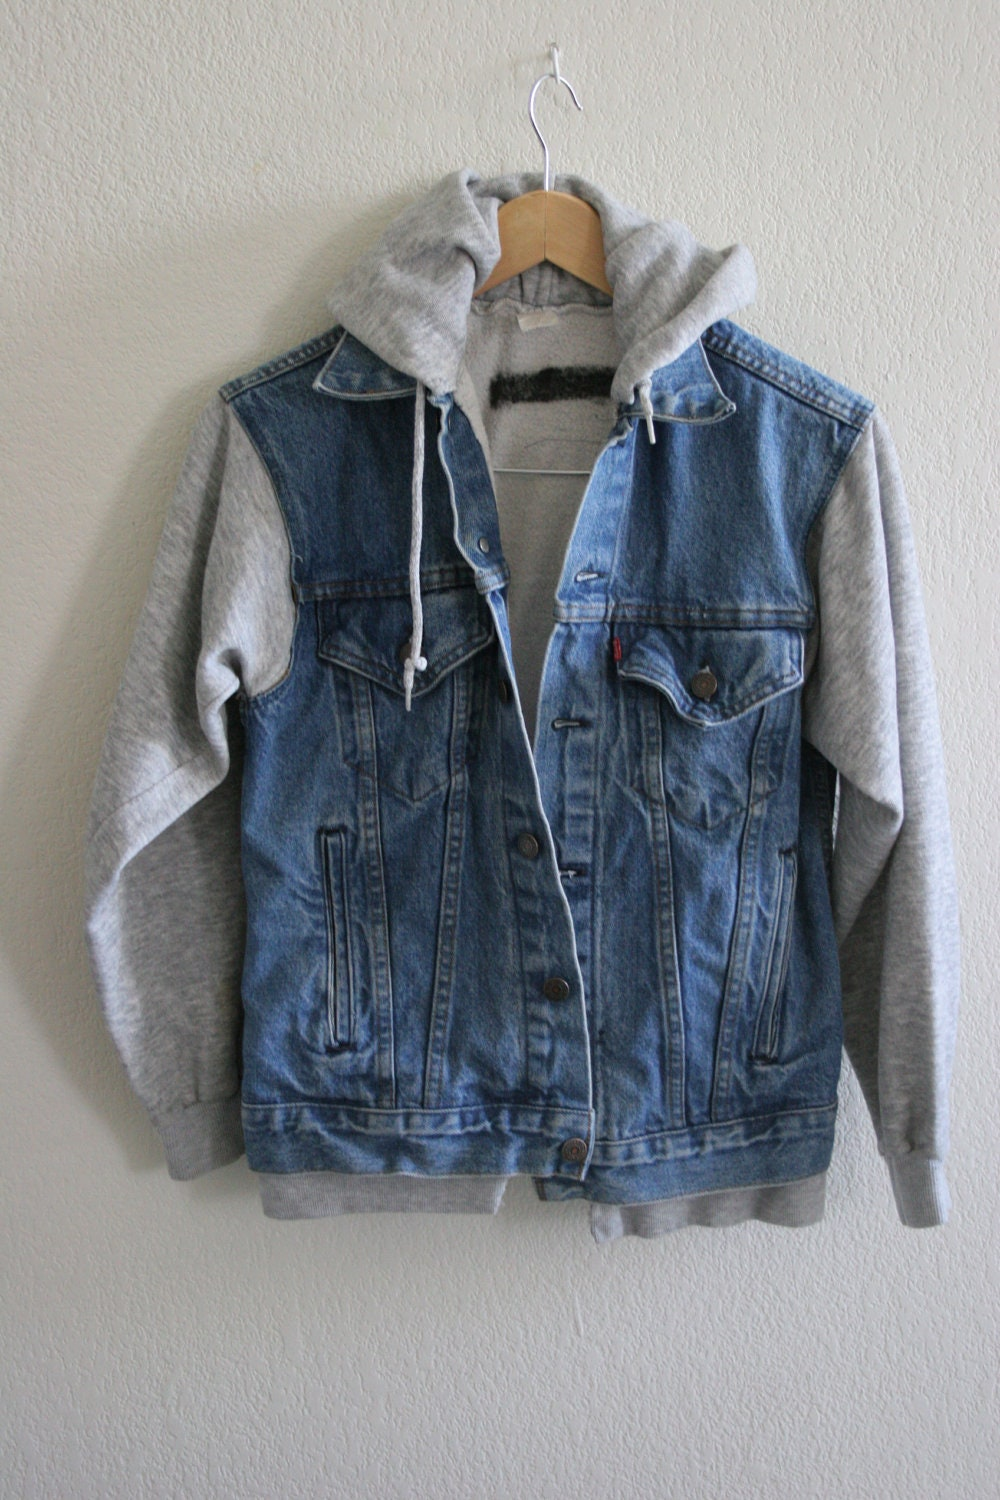 Levi Denim Jackets And Vests Pictures to Pin on Pinterest - PinsDaddy